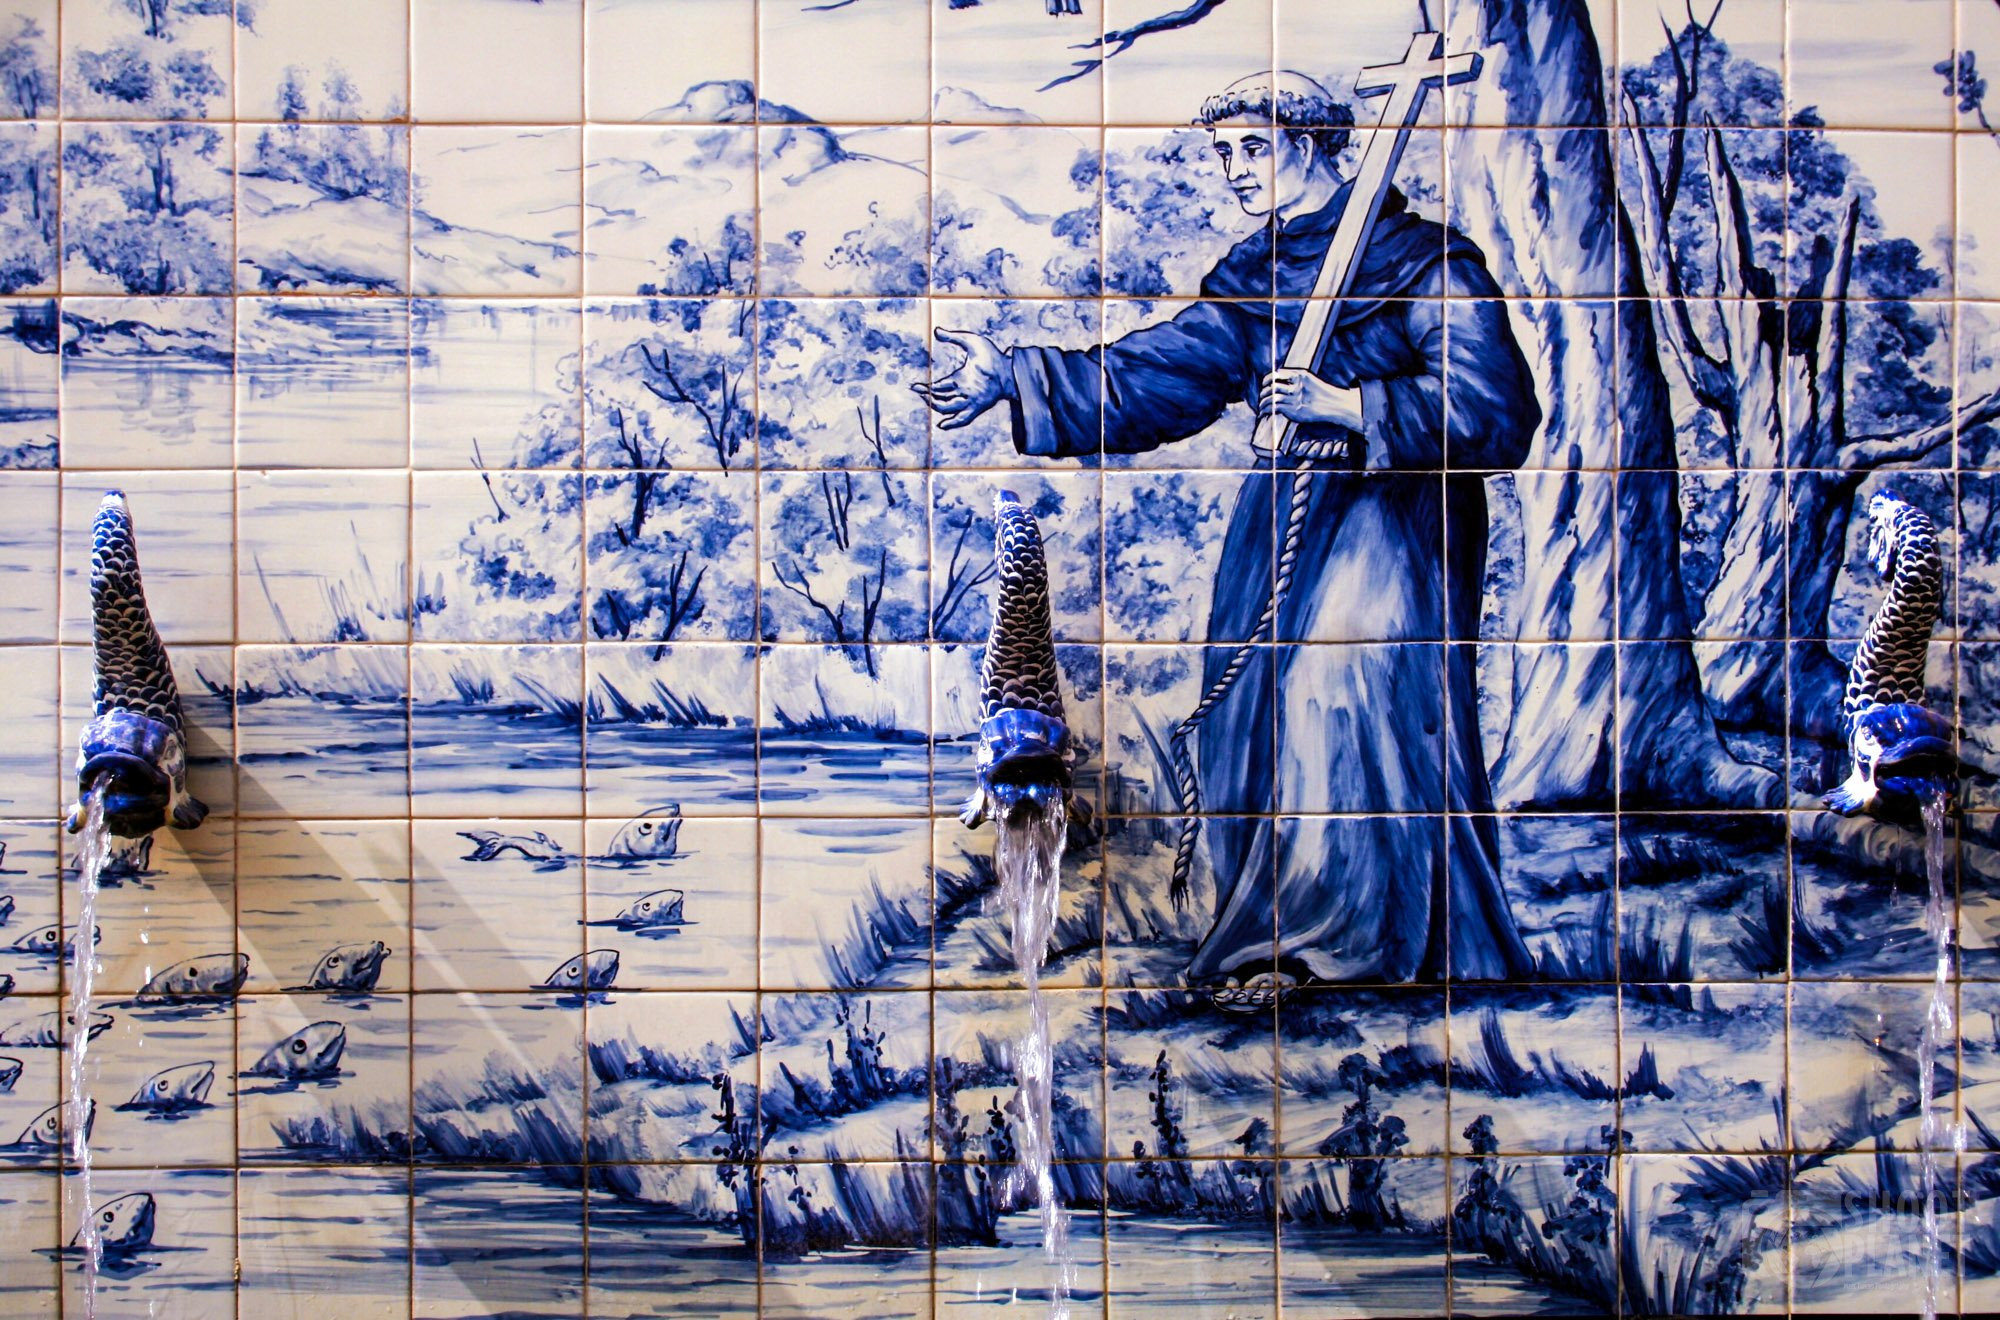 18th century Portugese tile fountain, Macao China